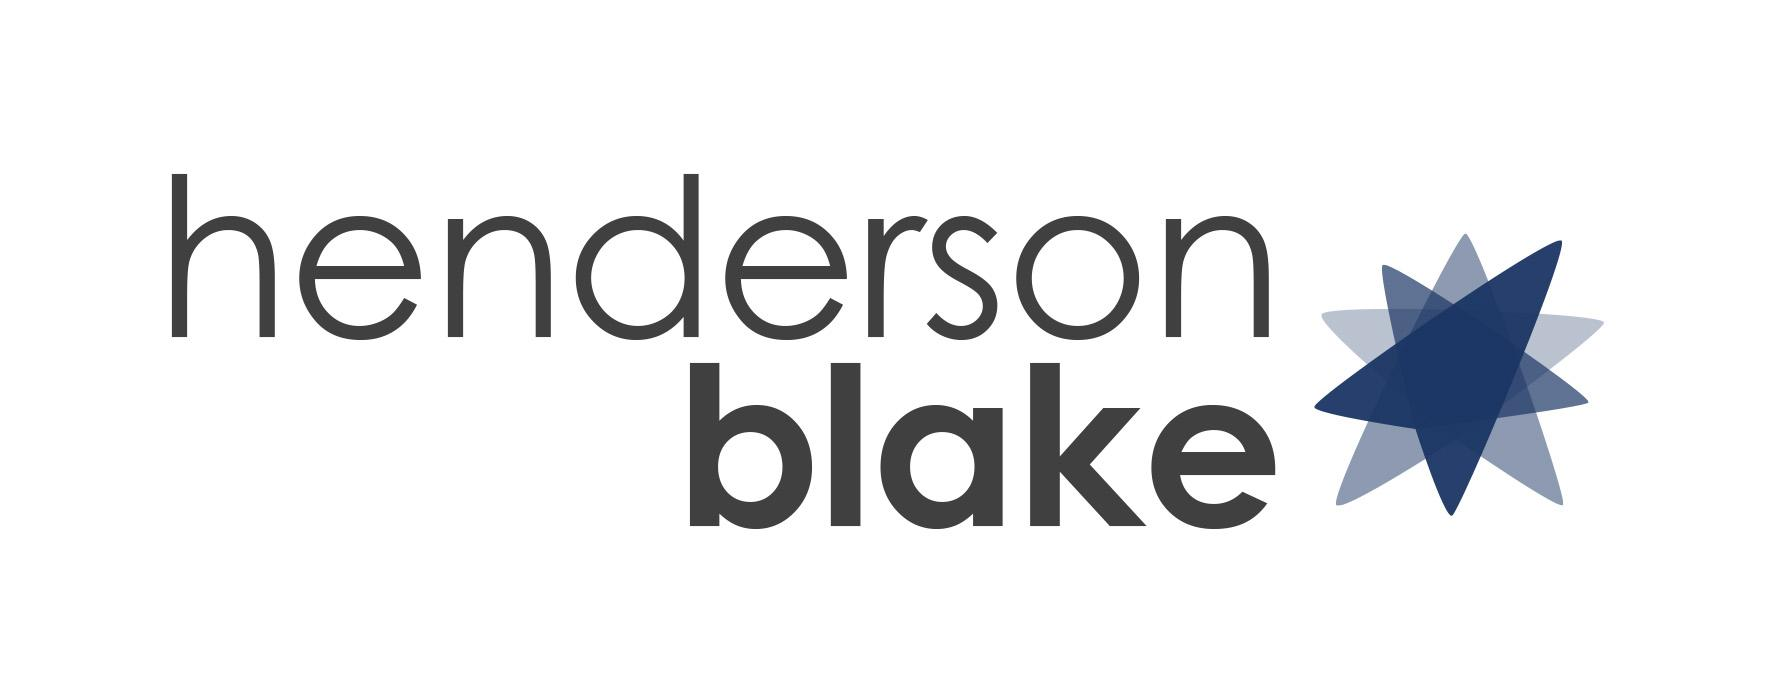 Henderson Blake Business Solutions, Inc.